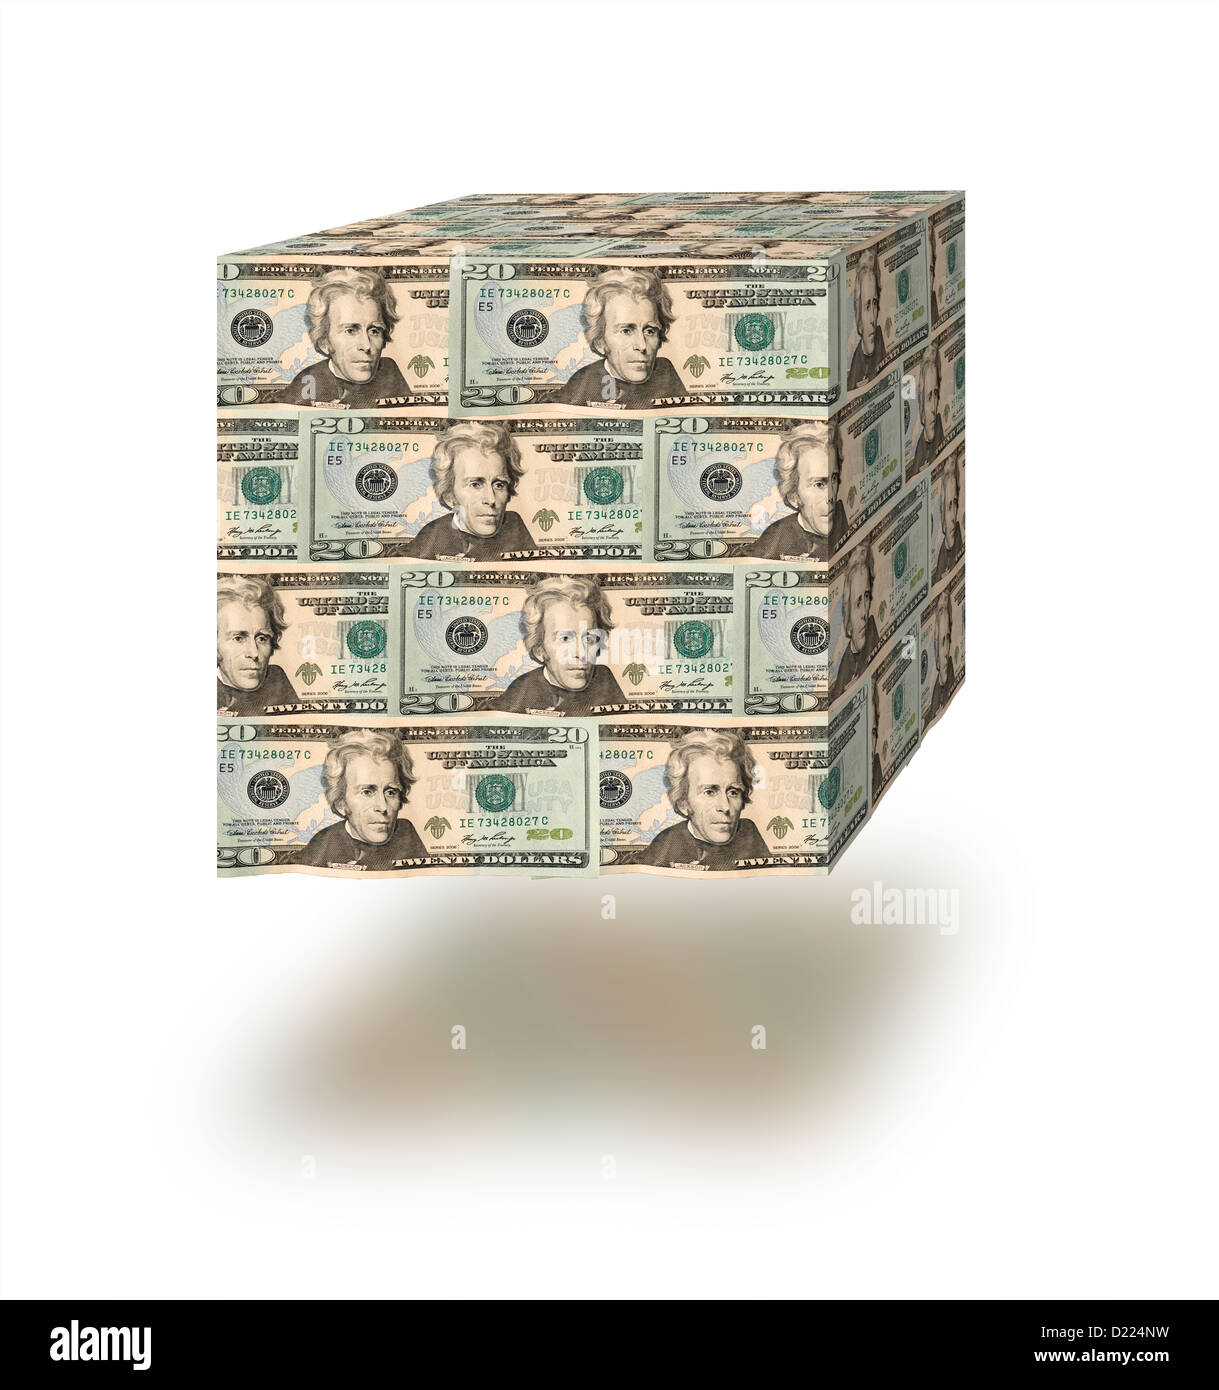 Cube of money against a white background - Stock Image